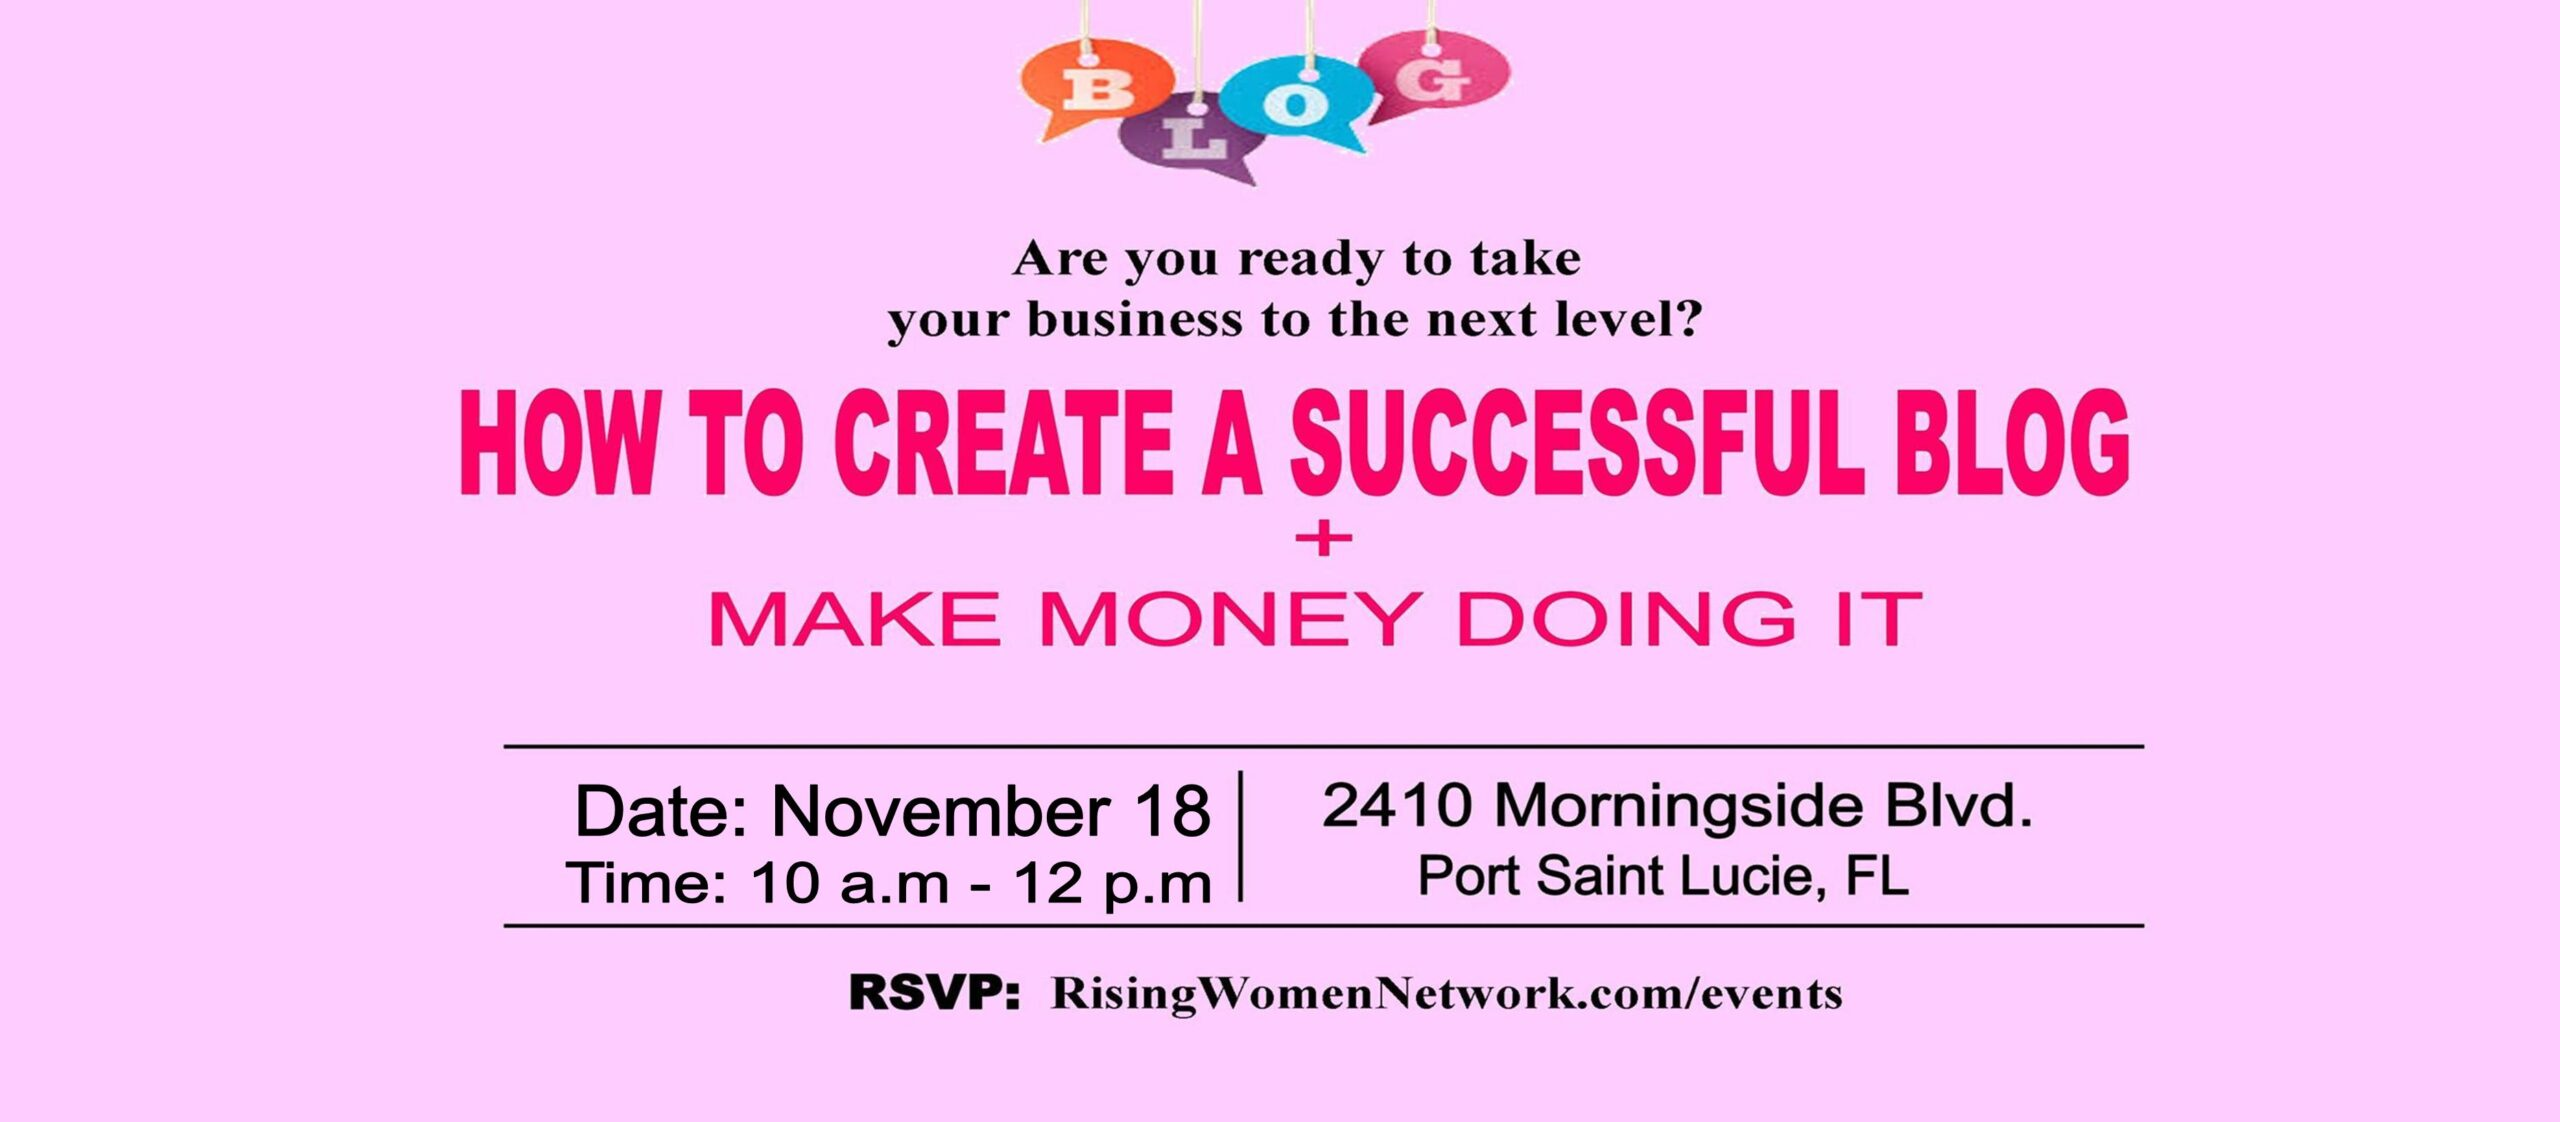 This workshop is a wildly fun, fiercely smart, two-hour workshop tailored to women who want to elevate their online presence and create a successful blog.